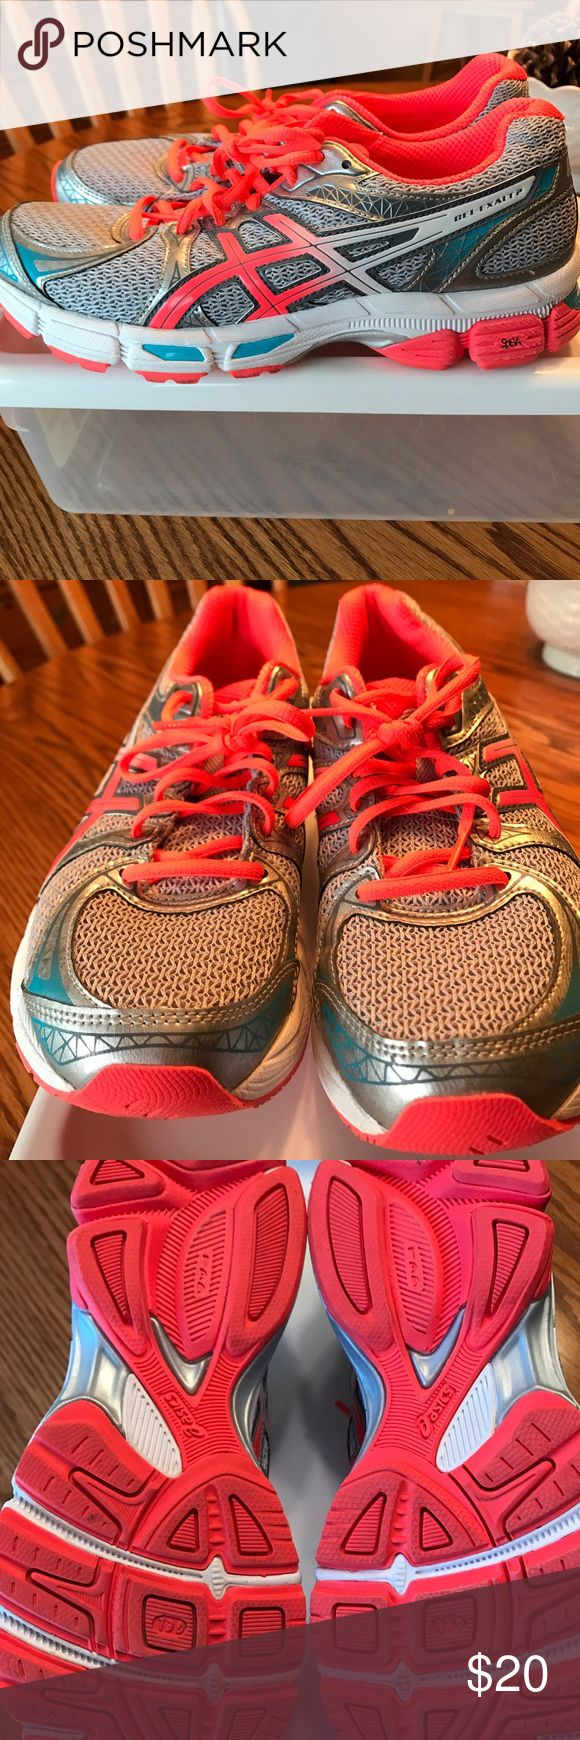 Asics women's athletic shoes Asics Gel-Exalt2 women's athletic shoes. Only worn to try on. Do not have box. Priced to sell. Smoke free home. Asics Shoes Athletic Shoes